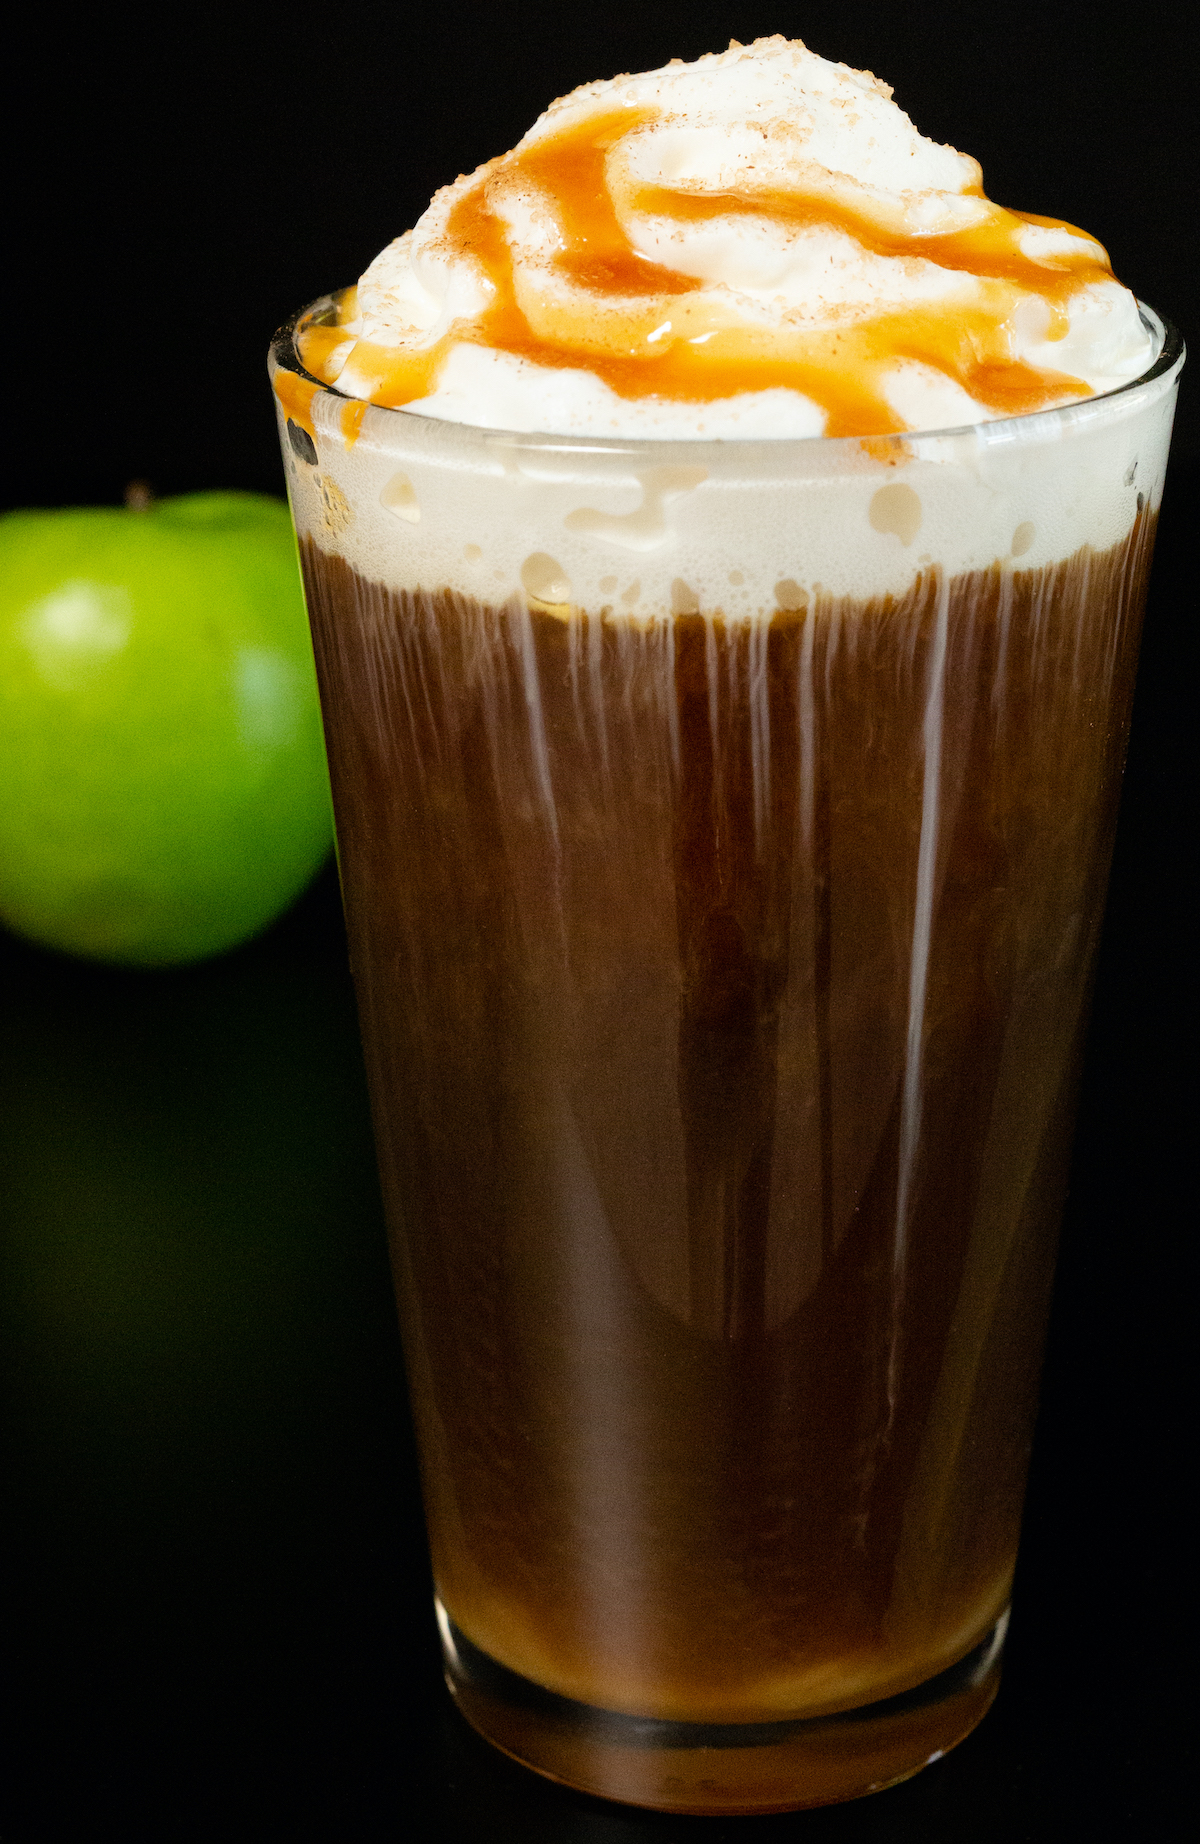 A pint glass filled with cold brew coffee and topped with whipped cream and caramel sits next to a green apple on a black background.